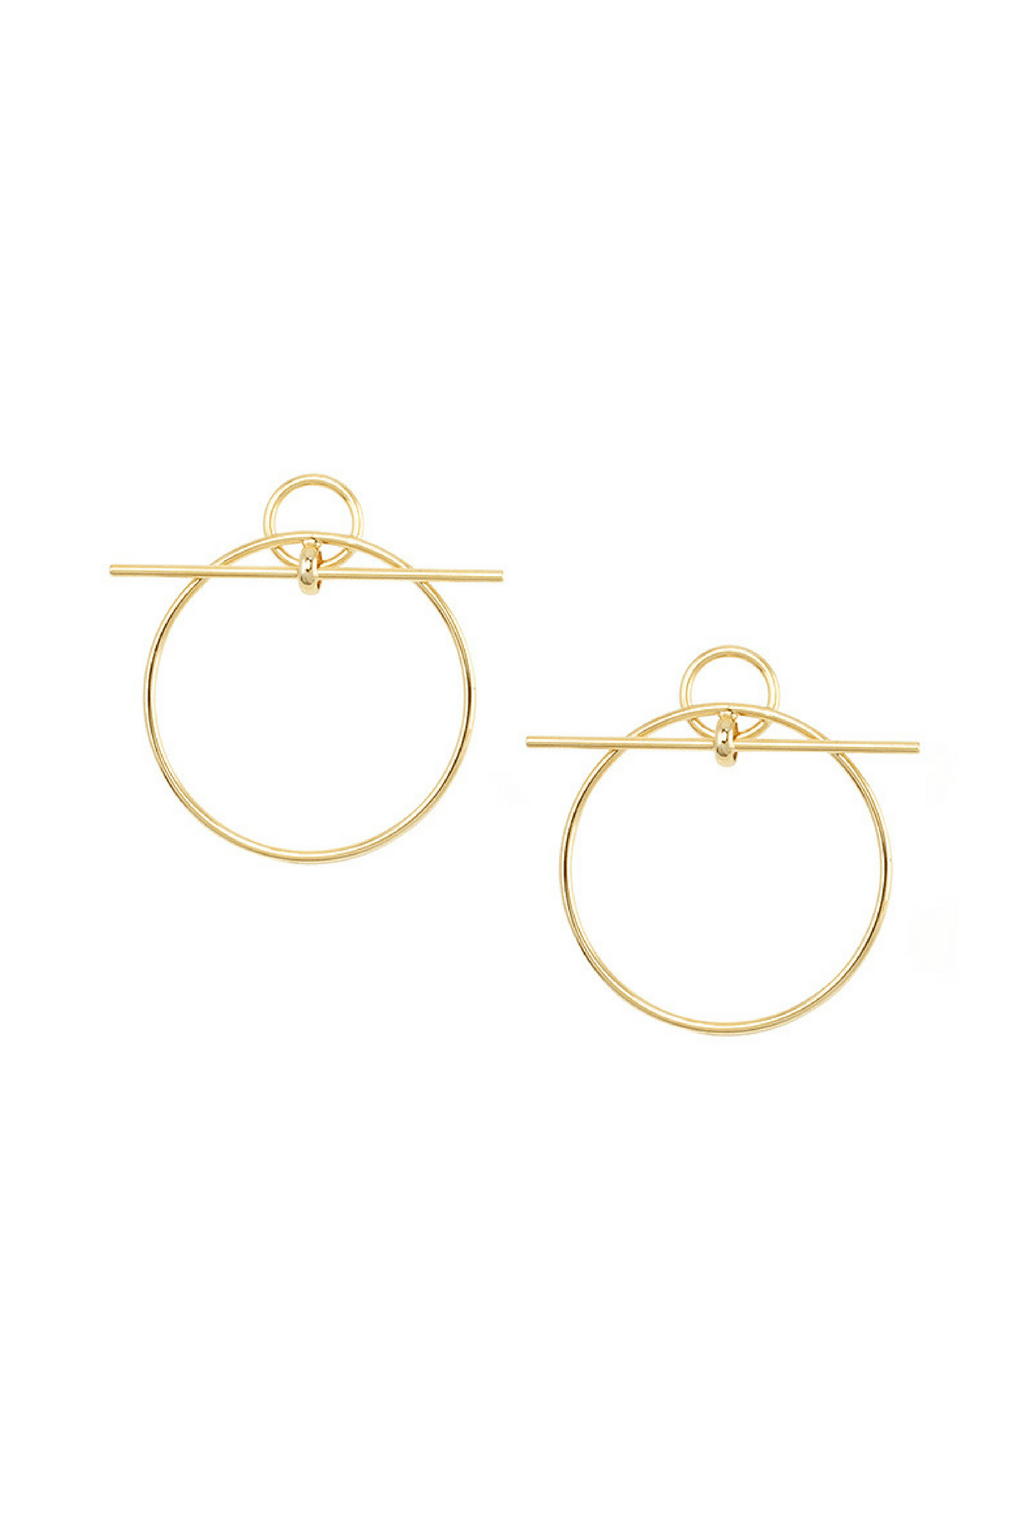 Suzanne Hoop Earrings - Jolie & Deen